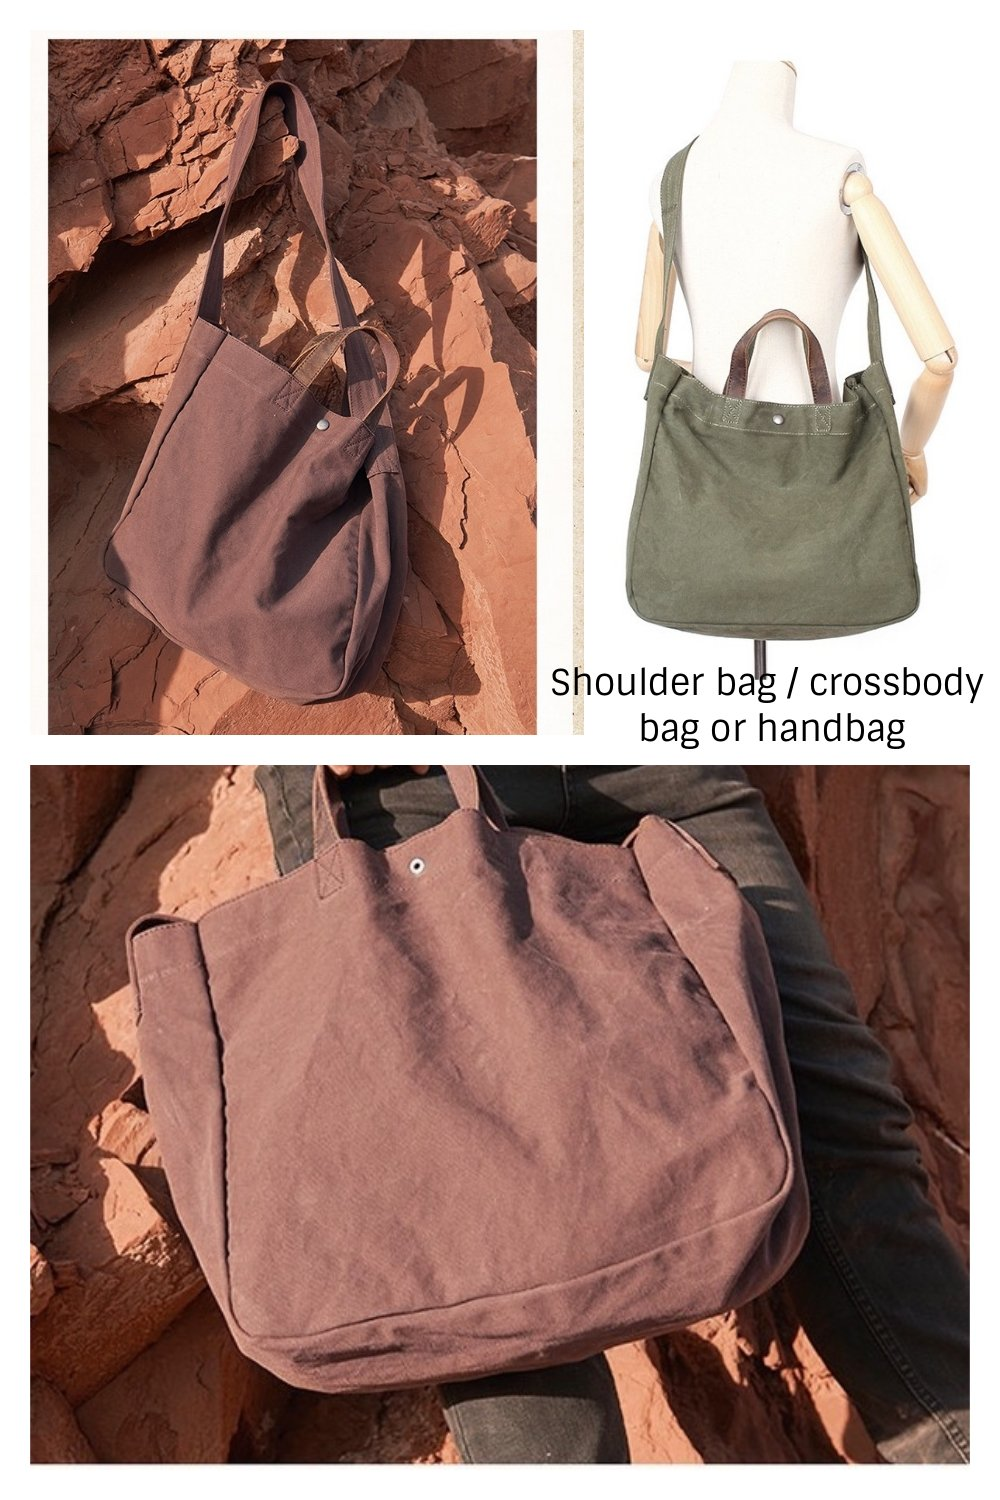 Canvas Tote Bag Shoulder Bag Crossbody Bag Heavy Duty Travel Bag For Men And Women Leather Handle Shoulder Strap (Earth) by Jeelow (Image #5)